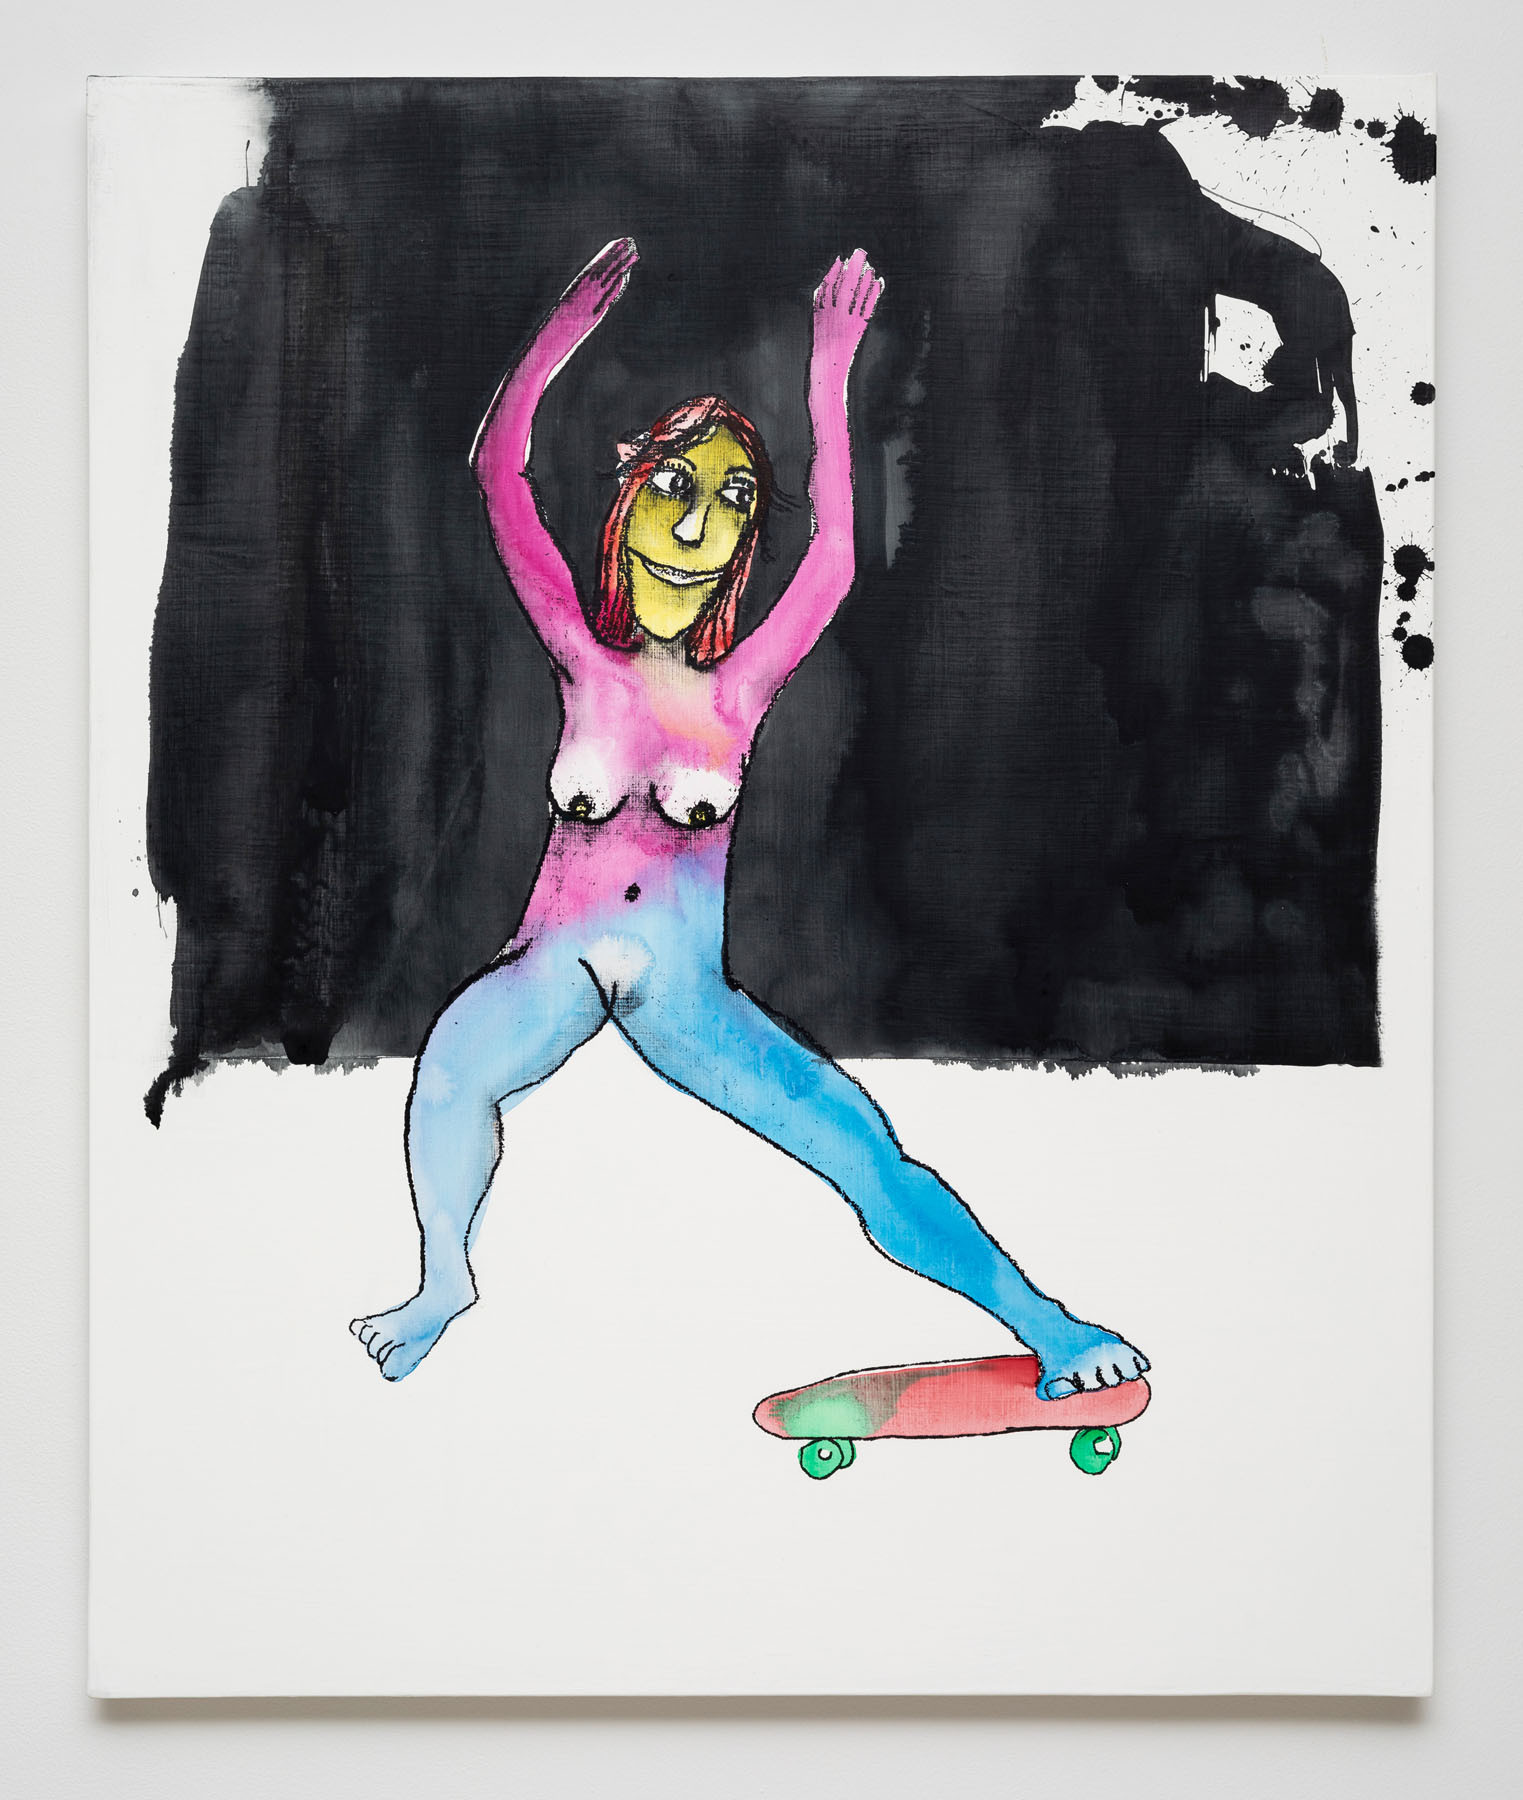 Dan McCarthy  Redondo Beach Skater, 2019  Silkscreen ink, acrylic and gesso on canvas  36 x 30 inches